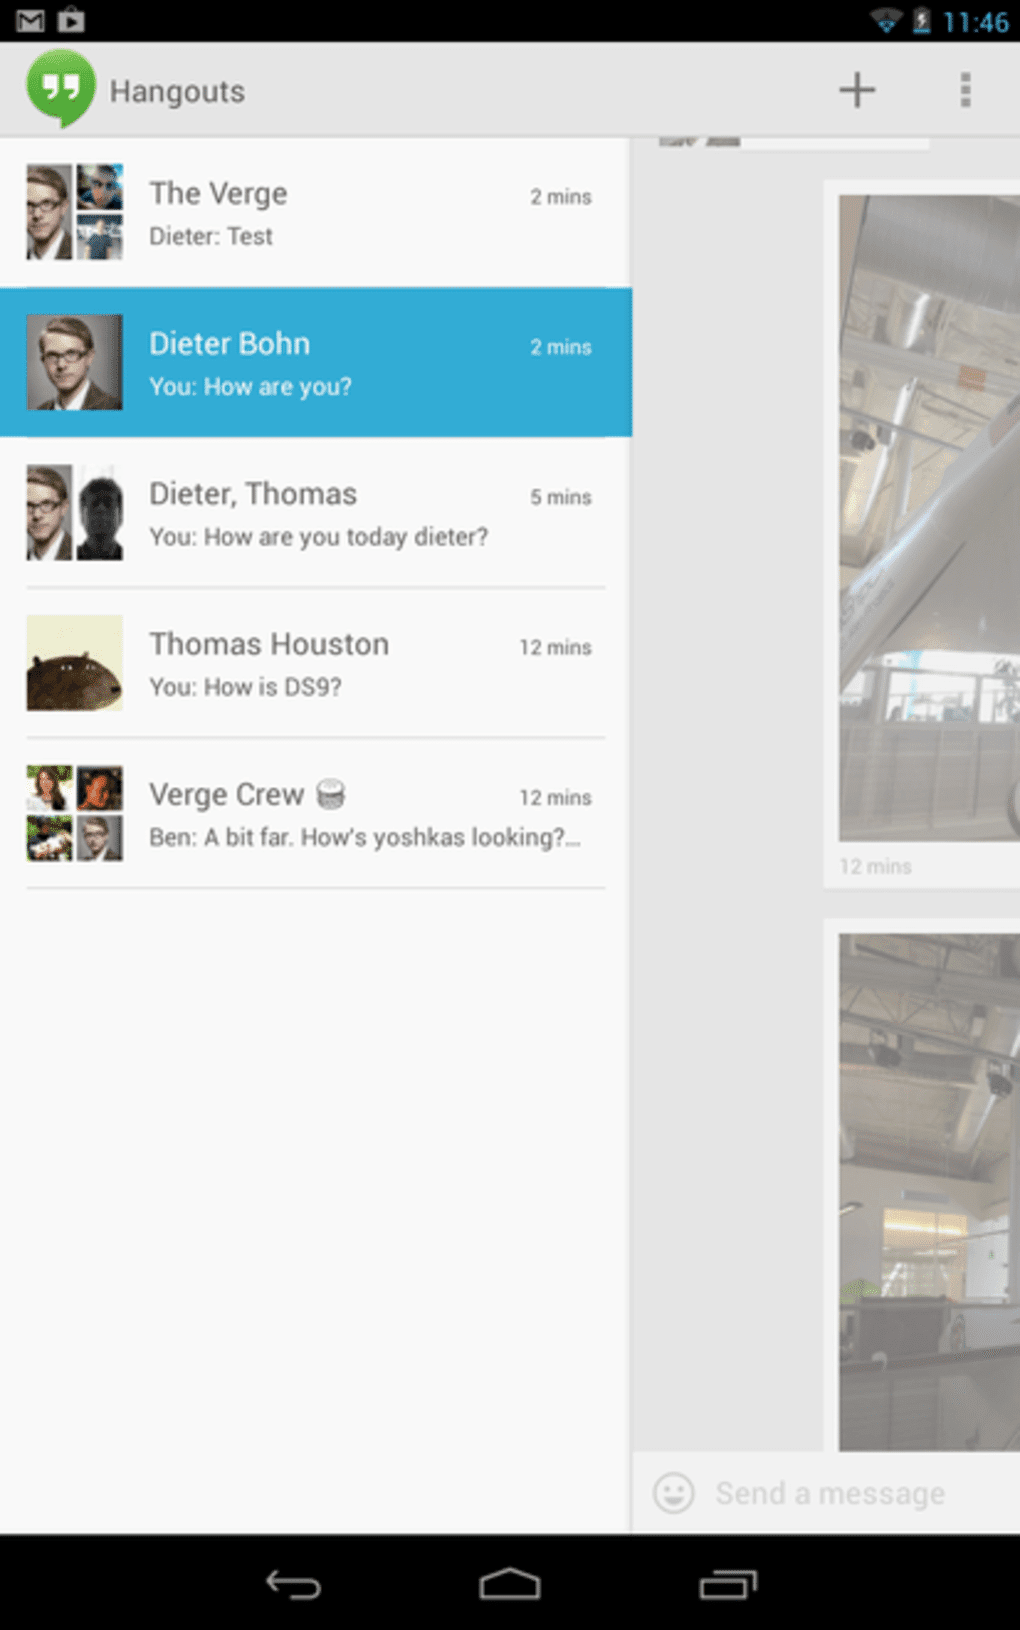 Download Free Unified Messaging App Google Hangouts for